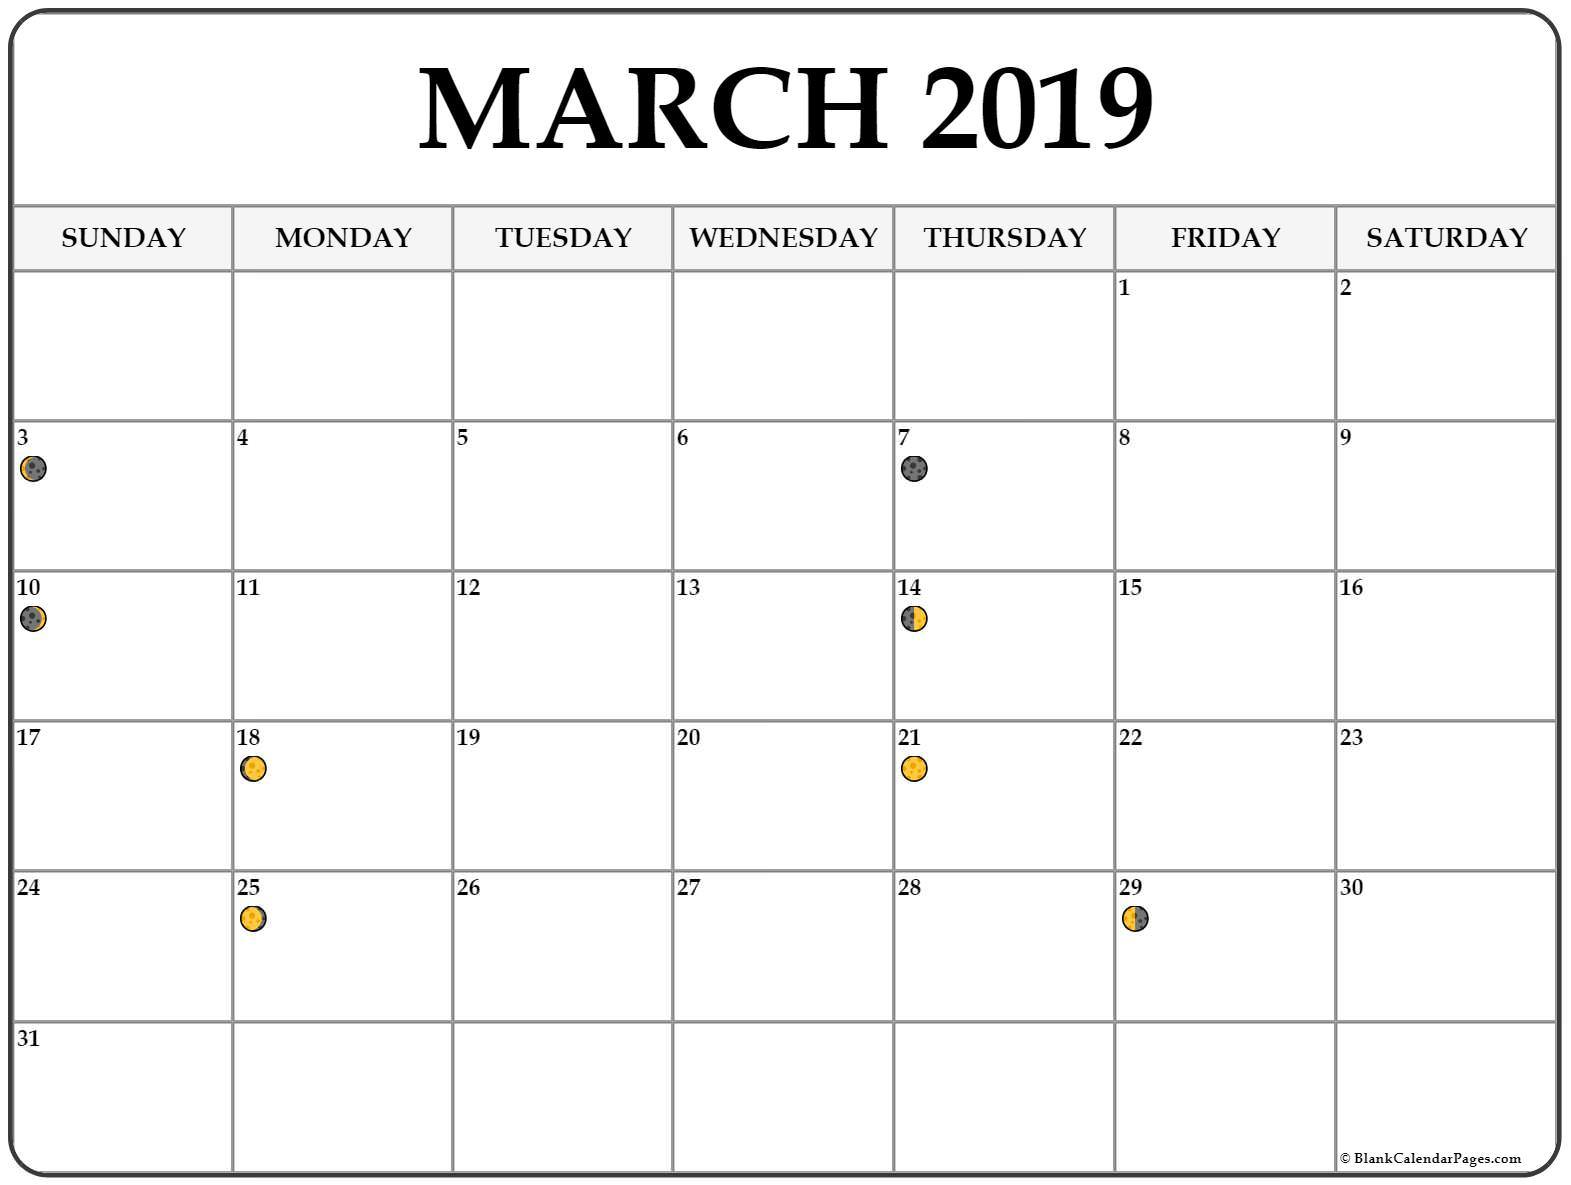 Full Moon Phases March 2019 Calendar